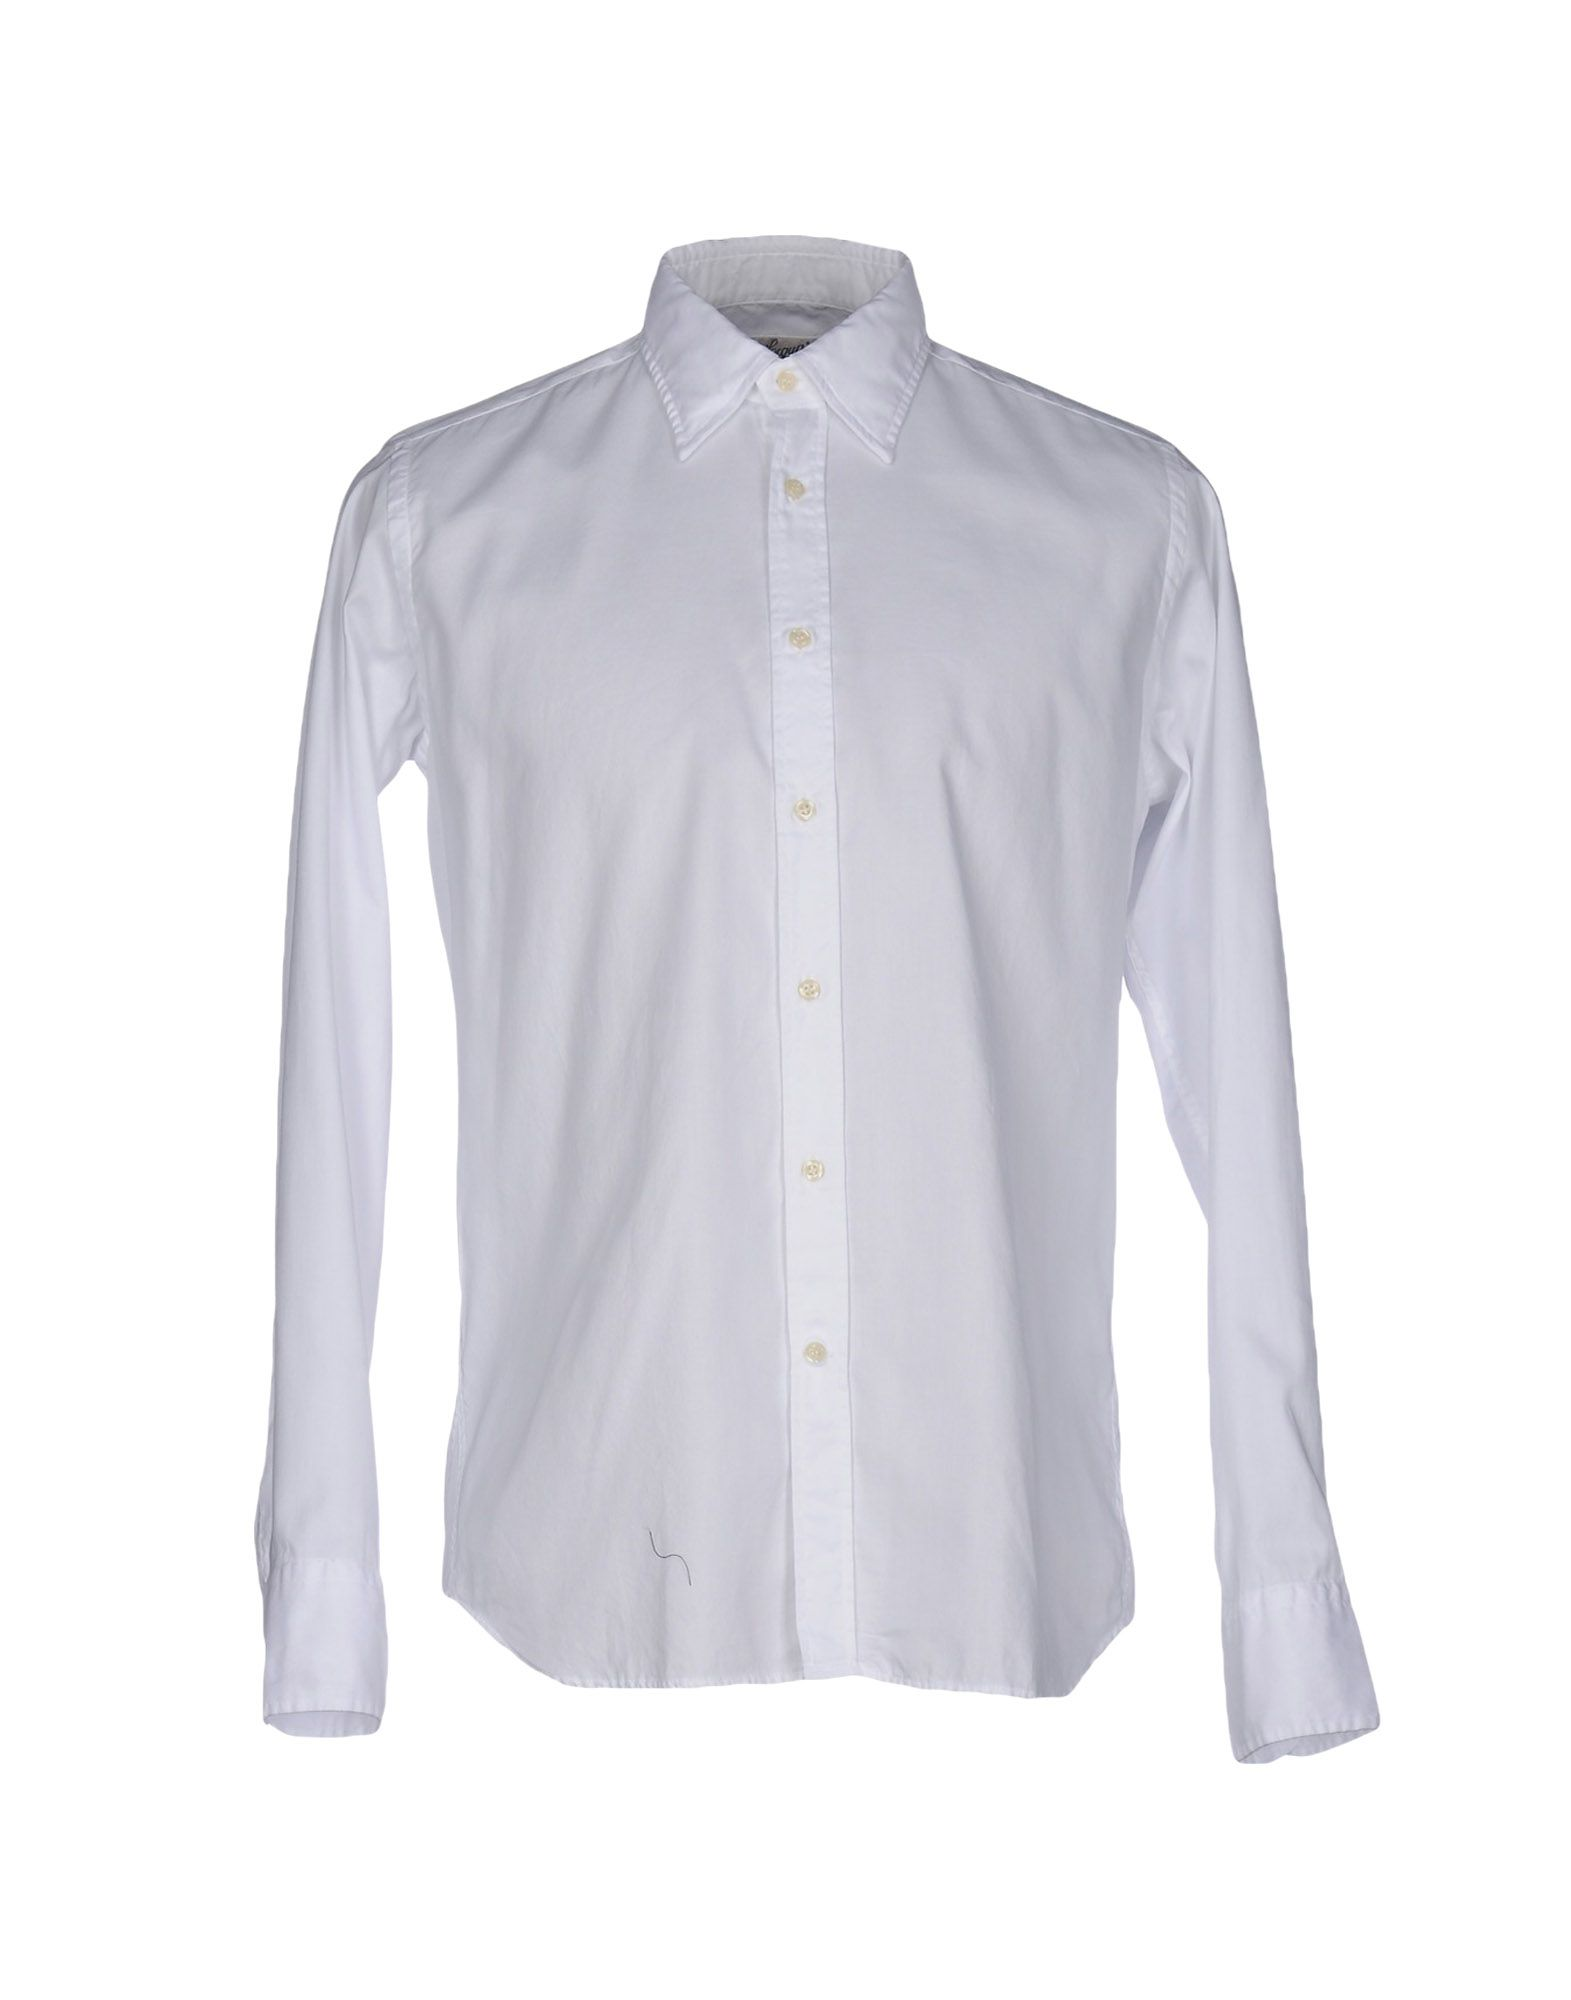 BEVILACQUA Denim Shirt in White